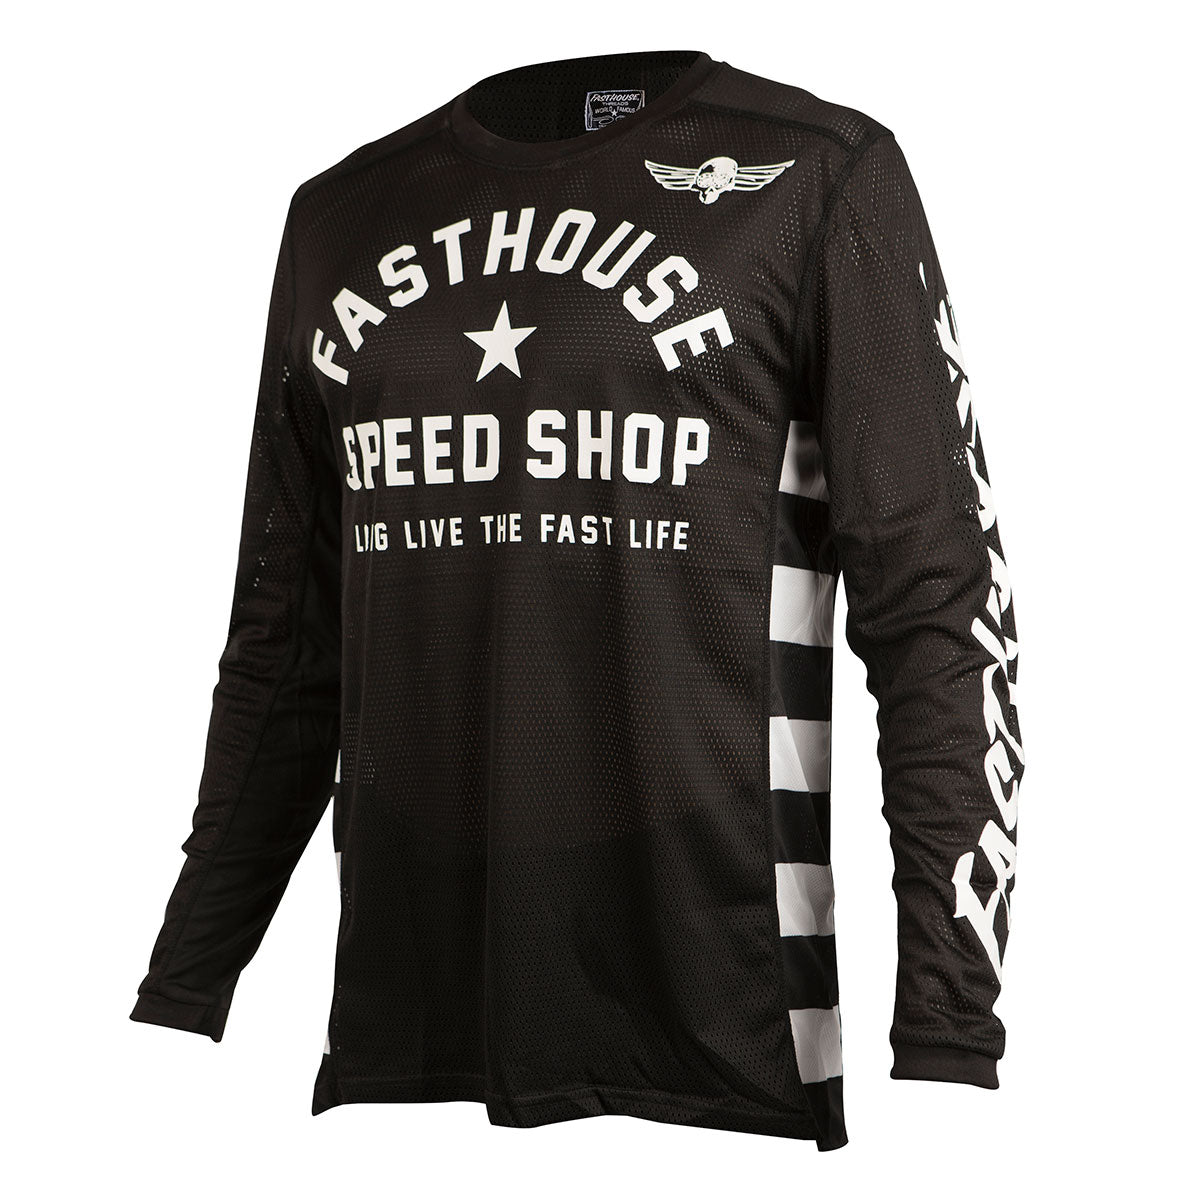 Fasthouse - Originals Air Cooled L1 Jersey - Black